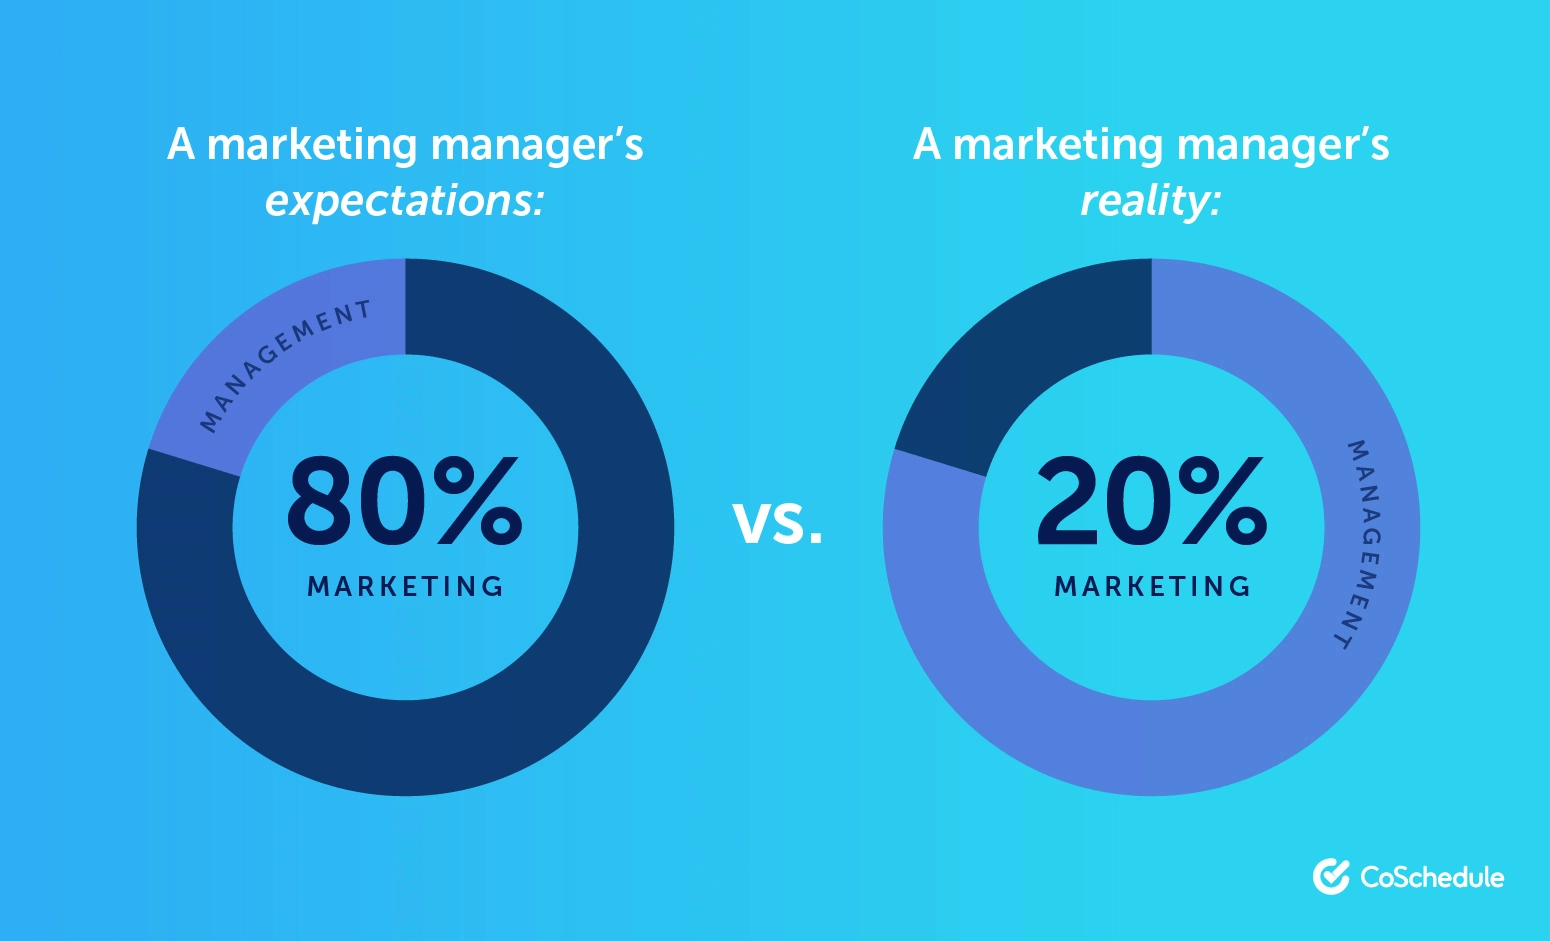 A marketing manager's expectations vs reality